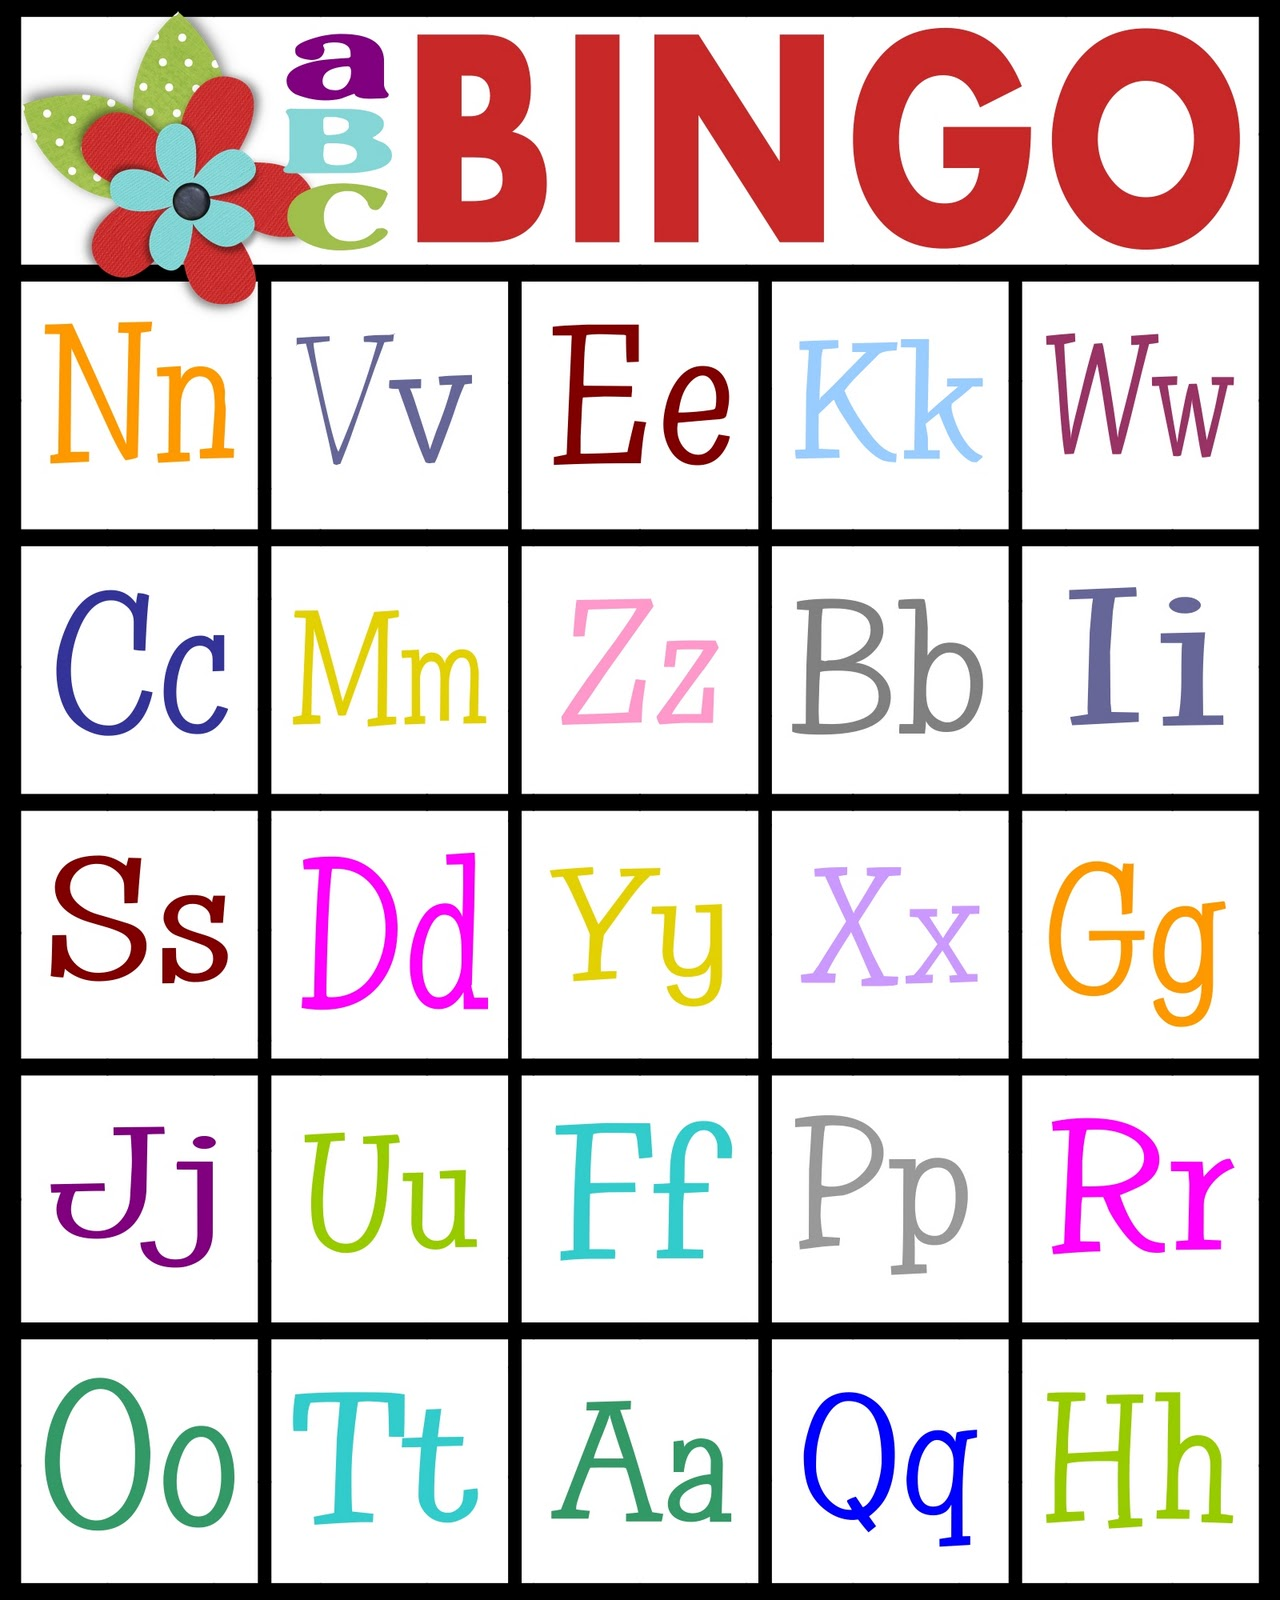 image regarding Abc Cards Printable named Sy Sanctuary: ABCs Bingo- absolutely free printable!